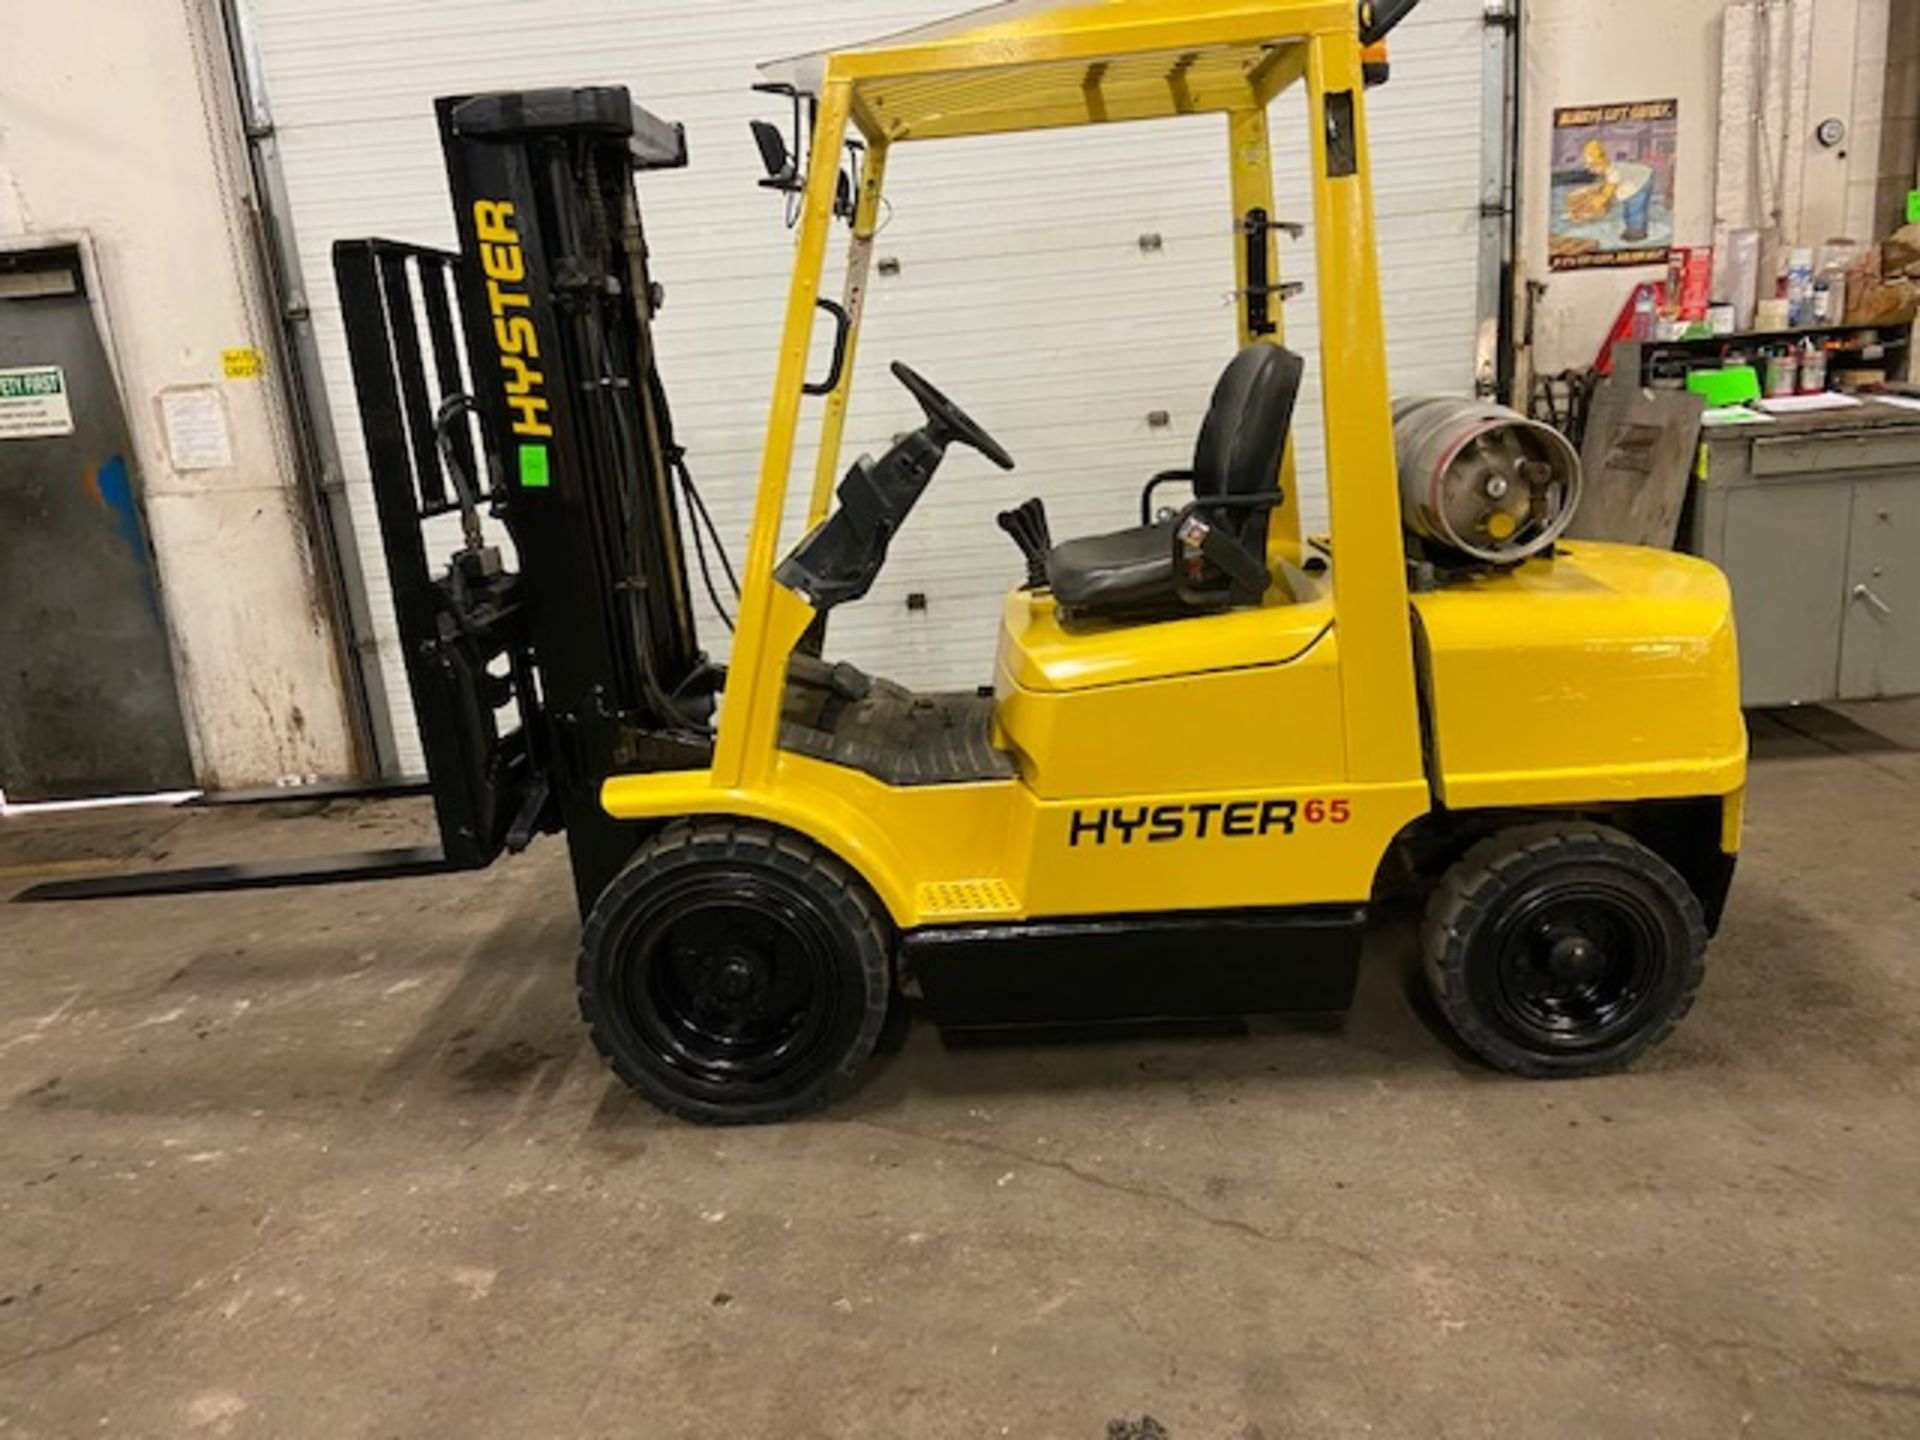 FREE CUSTOMS - Hyster 6500lbs OUTDOOR Forklift with sideshift fork positioner & 3-stage mast LPG